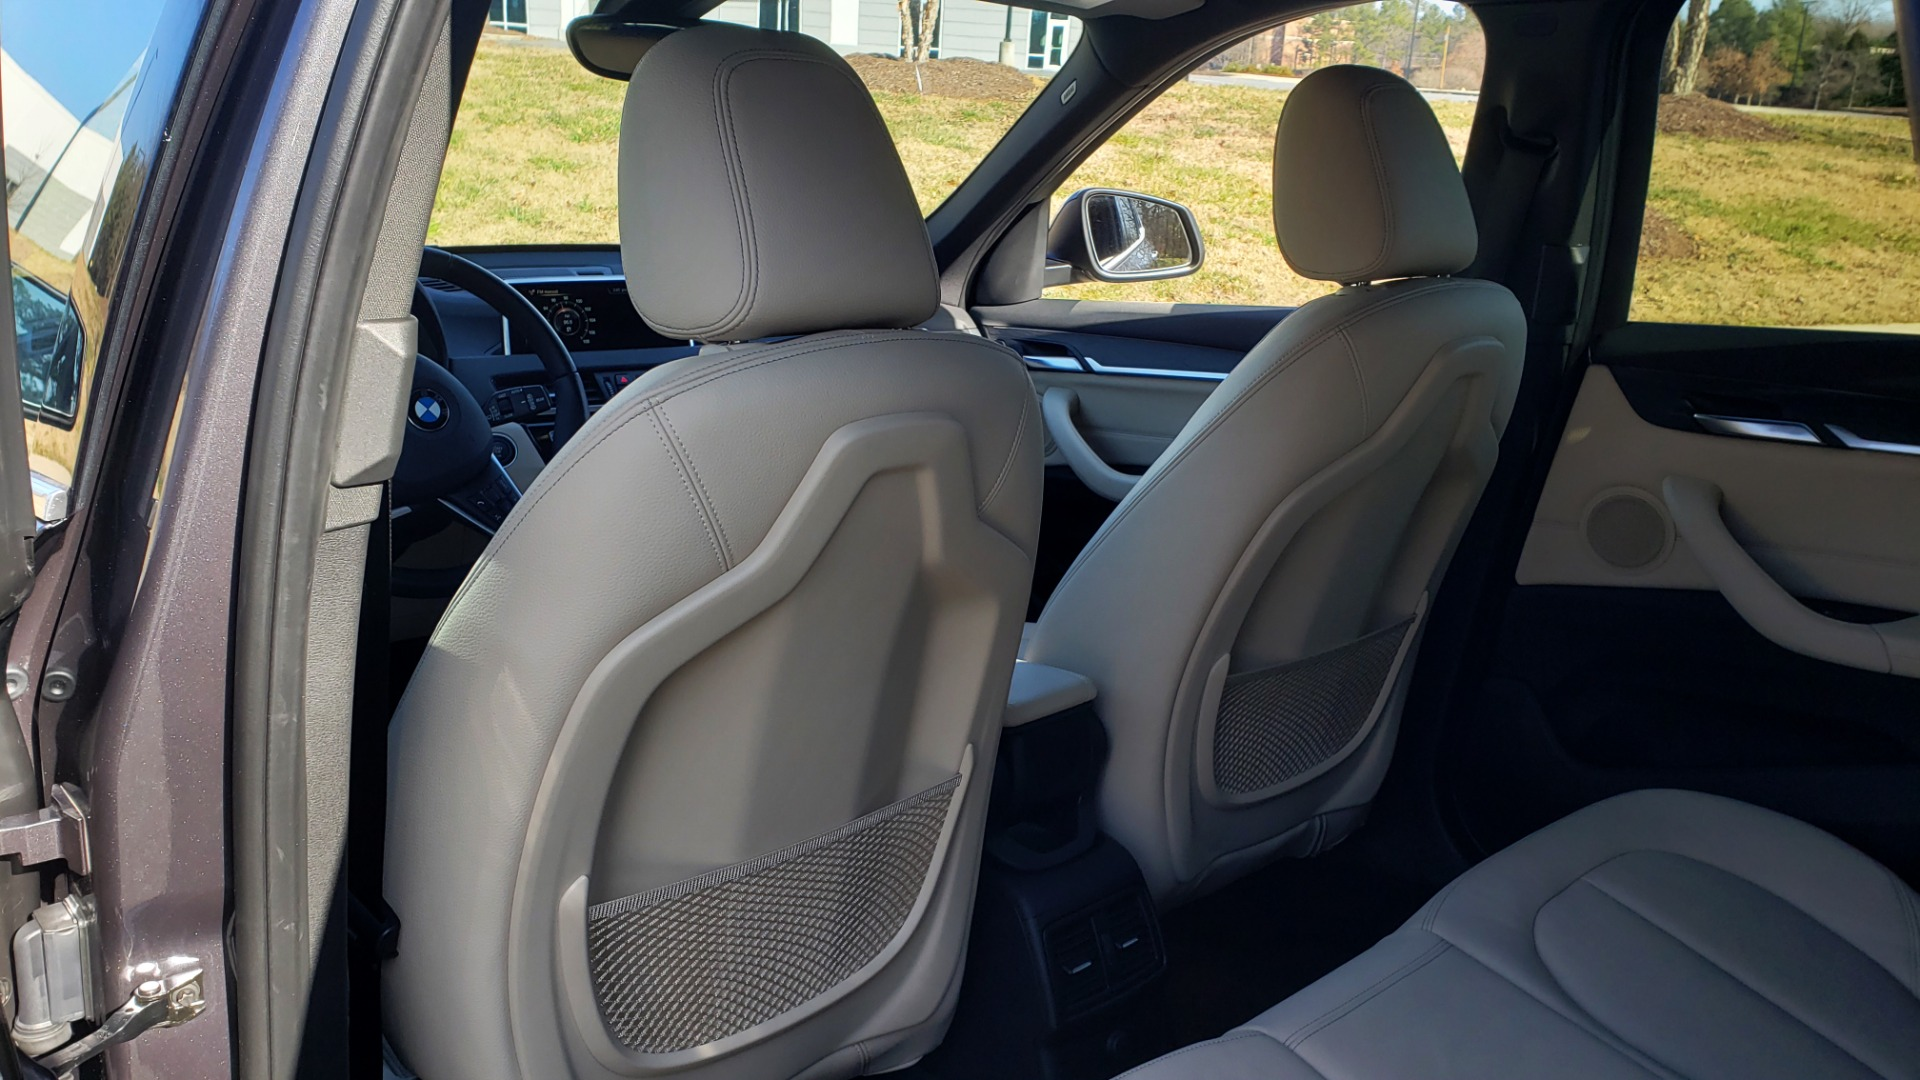 Used 2017 BMW X1 XDRIVE28I / PREM / TECH / DRVR ASST PLUS / COLD WTHR / REARVIEW for sale Sold at Formula Imports in Charlotte NC 28227 62